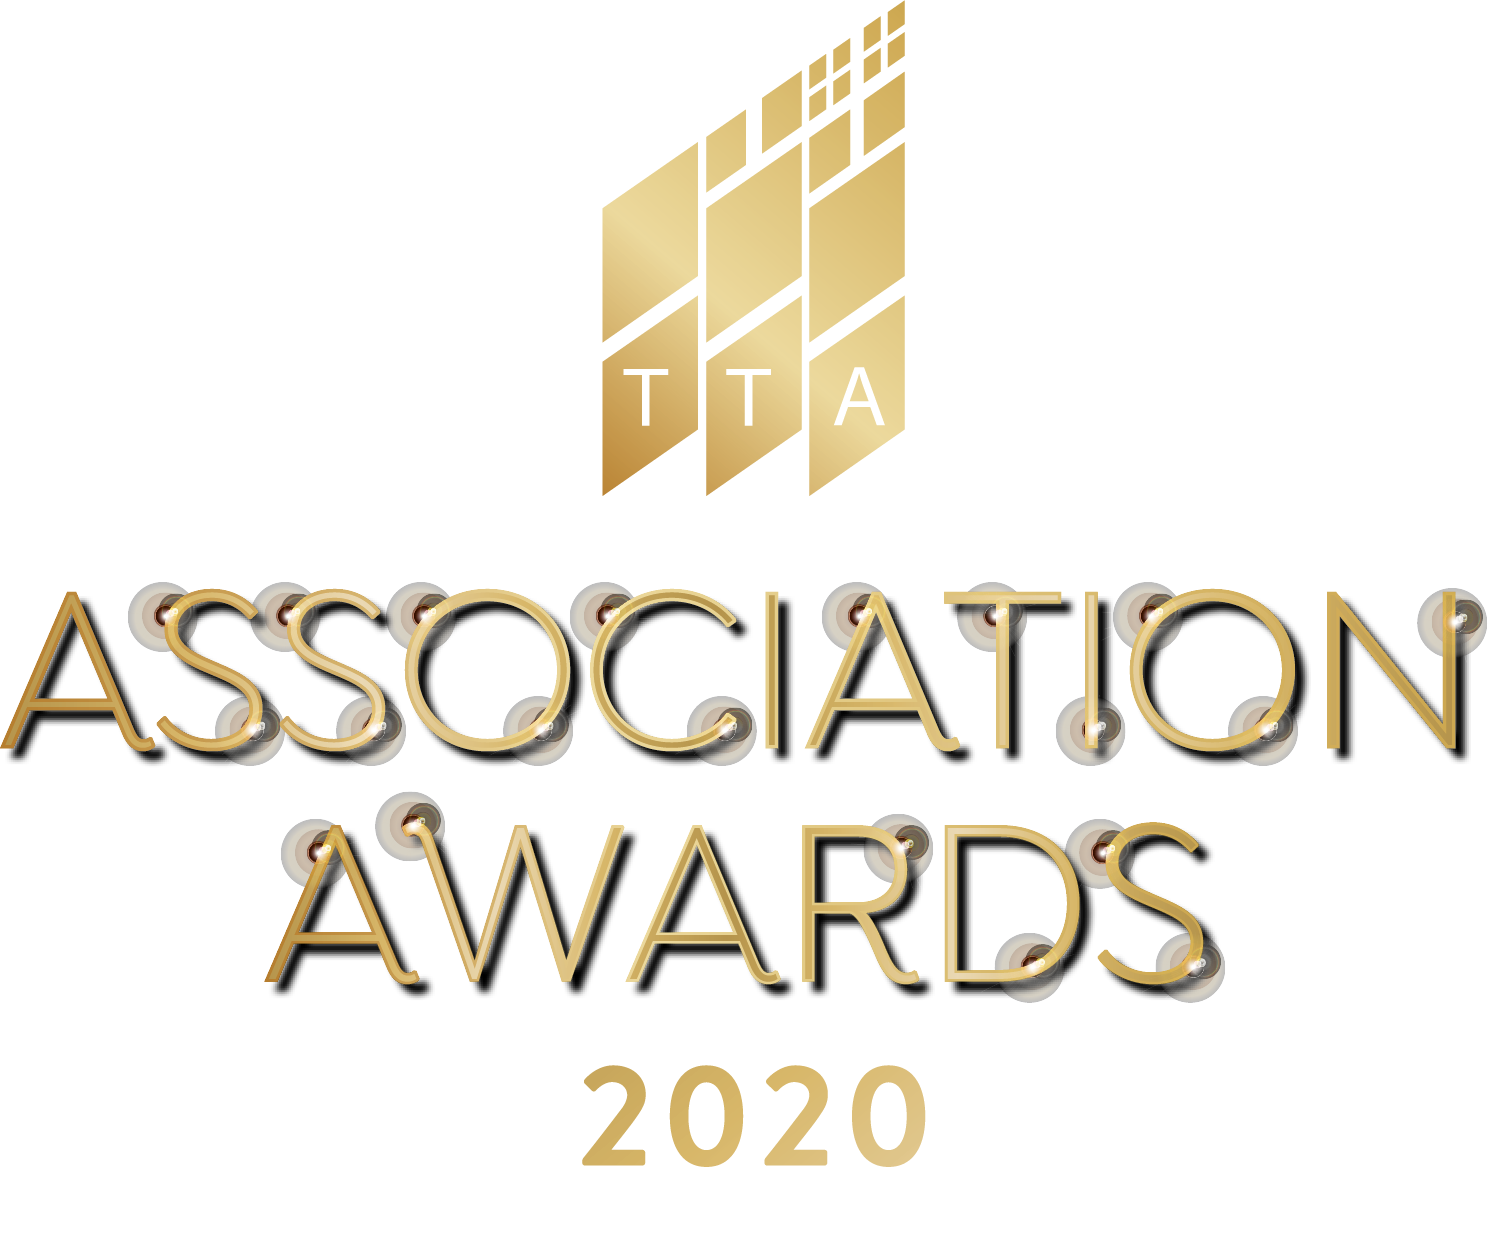 Association Awards